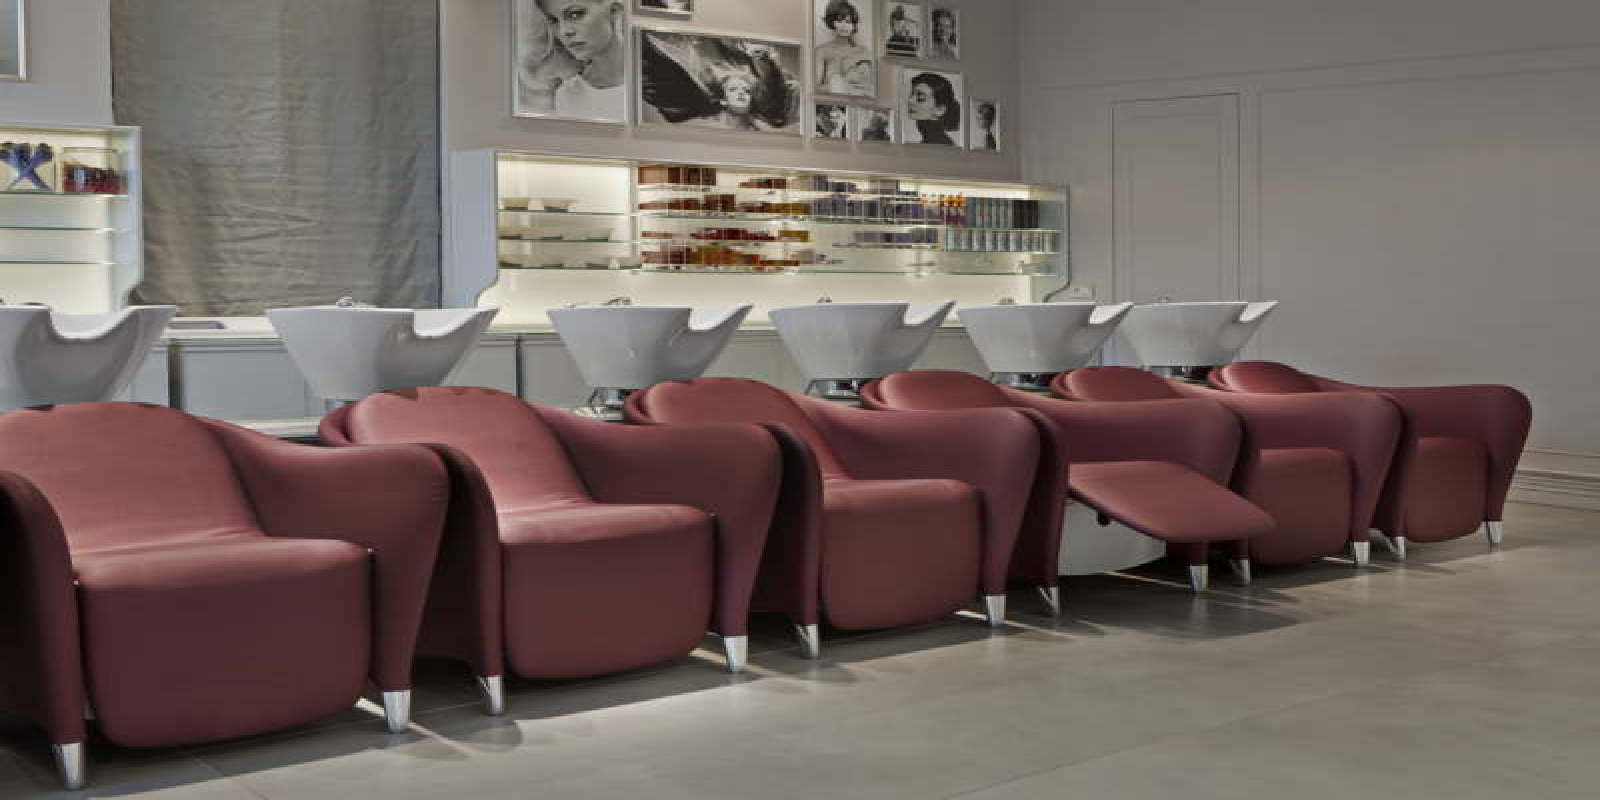 Titti Giovannoni Interior Design Maletti Group Interior Design Barberia Vintage Cosmoprof 2015